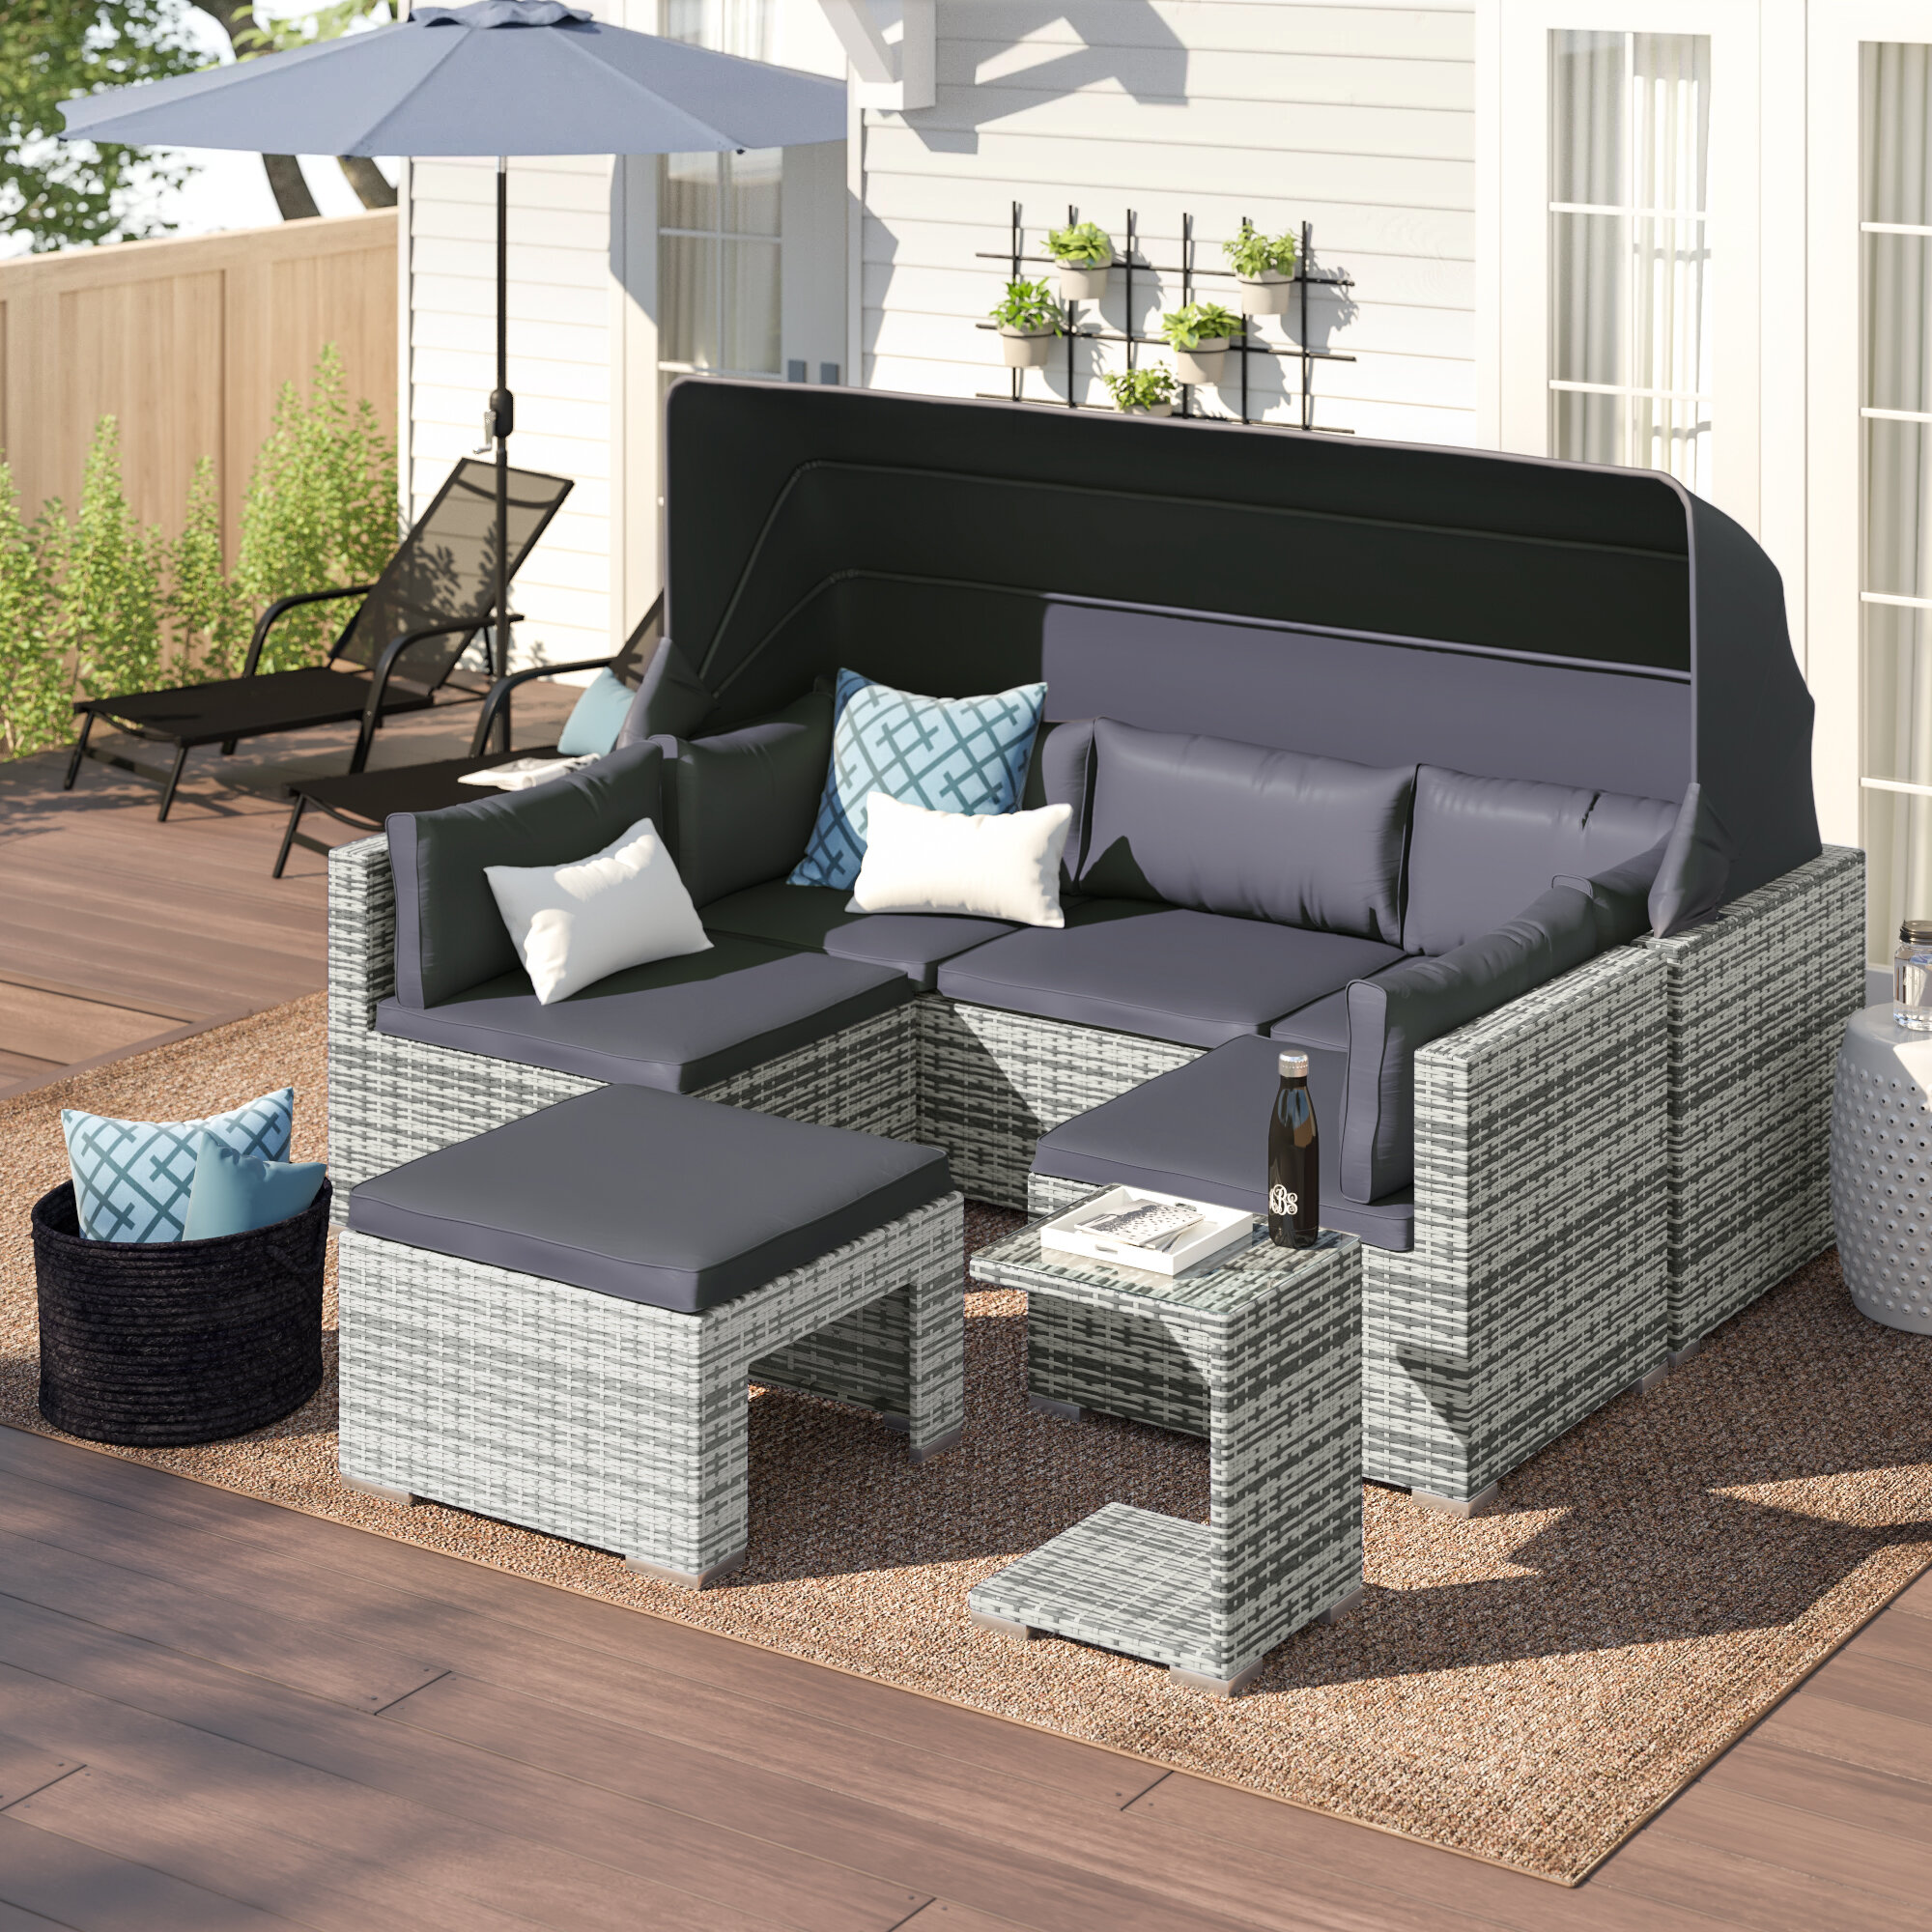 Zipcode Design Sedgwick 5 Piece Rattan Sectional Seating Group With Cushions Reviews Wayfair